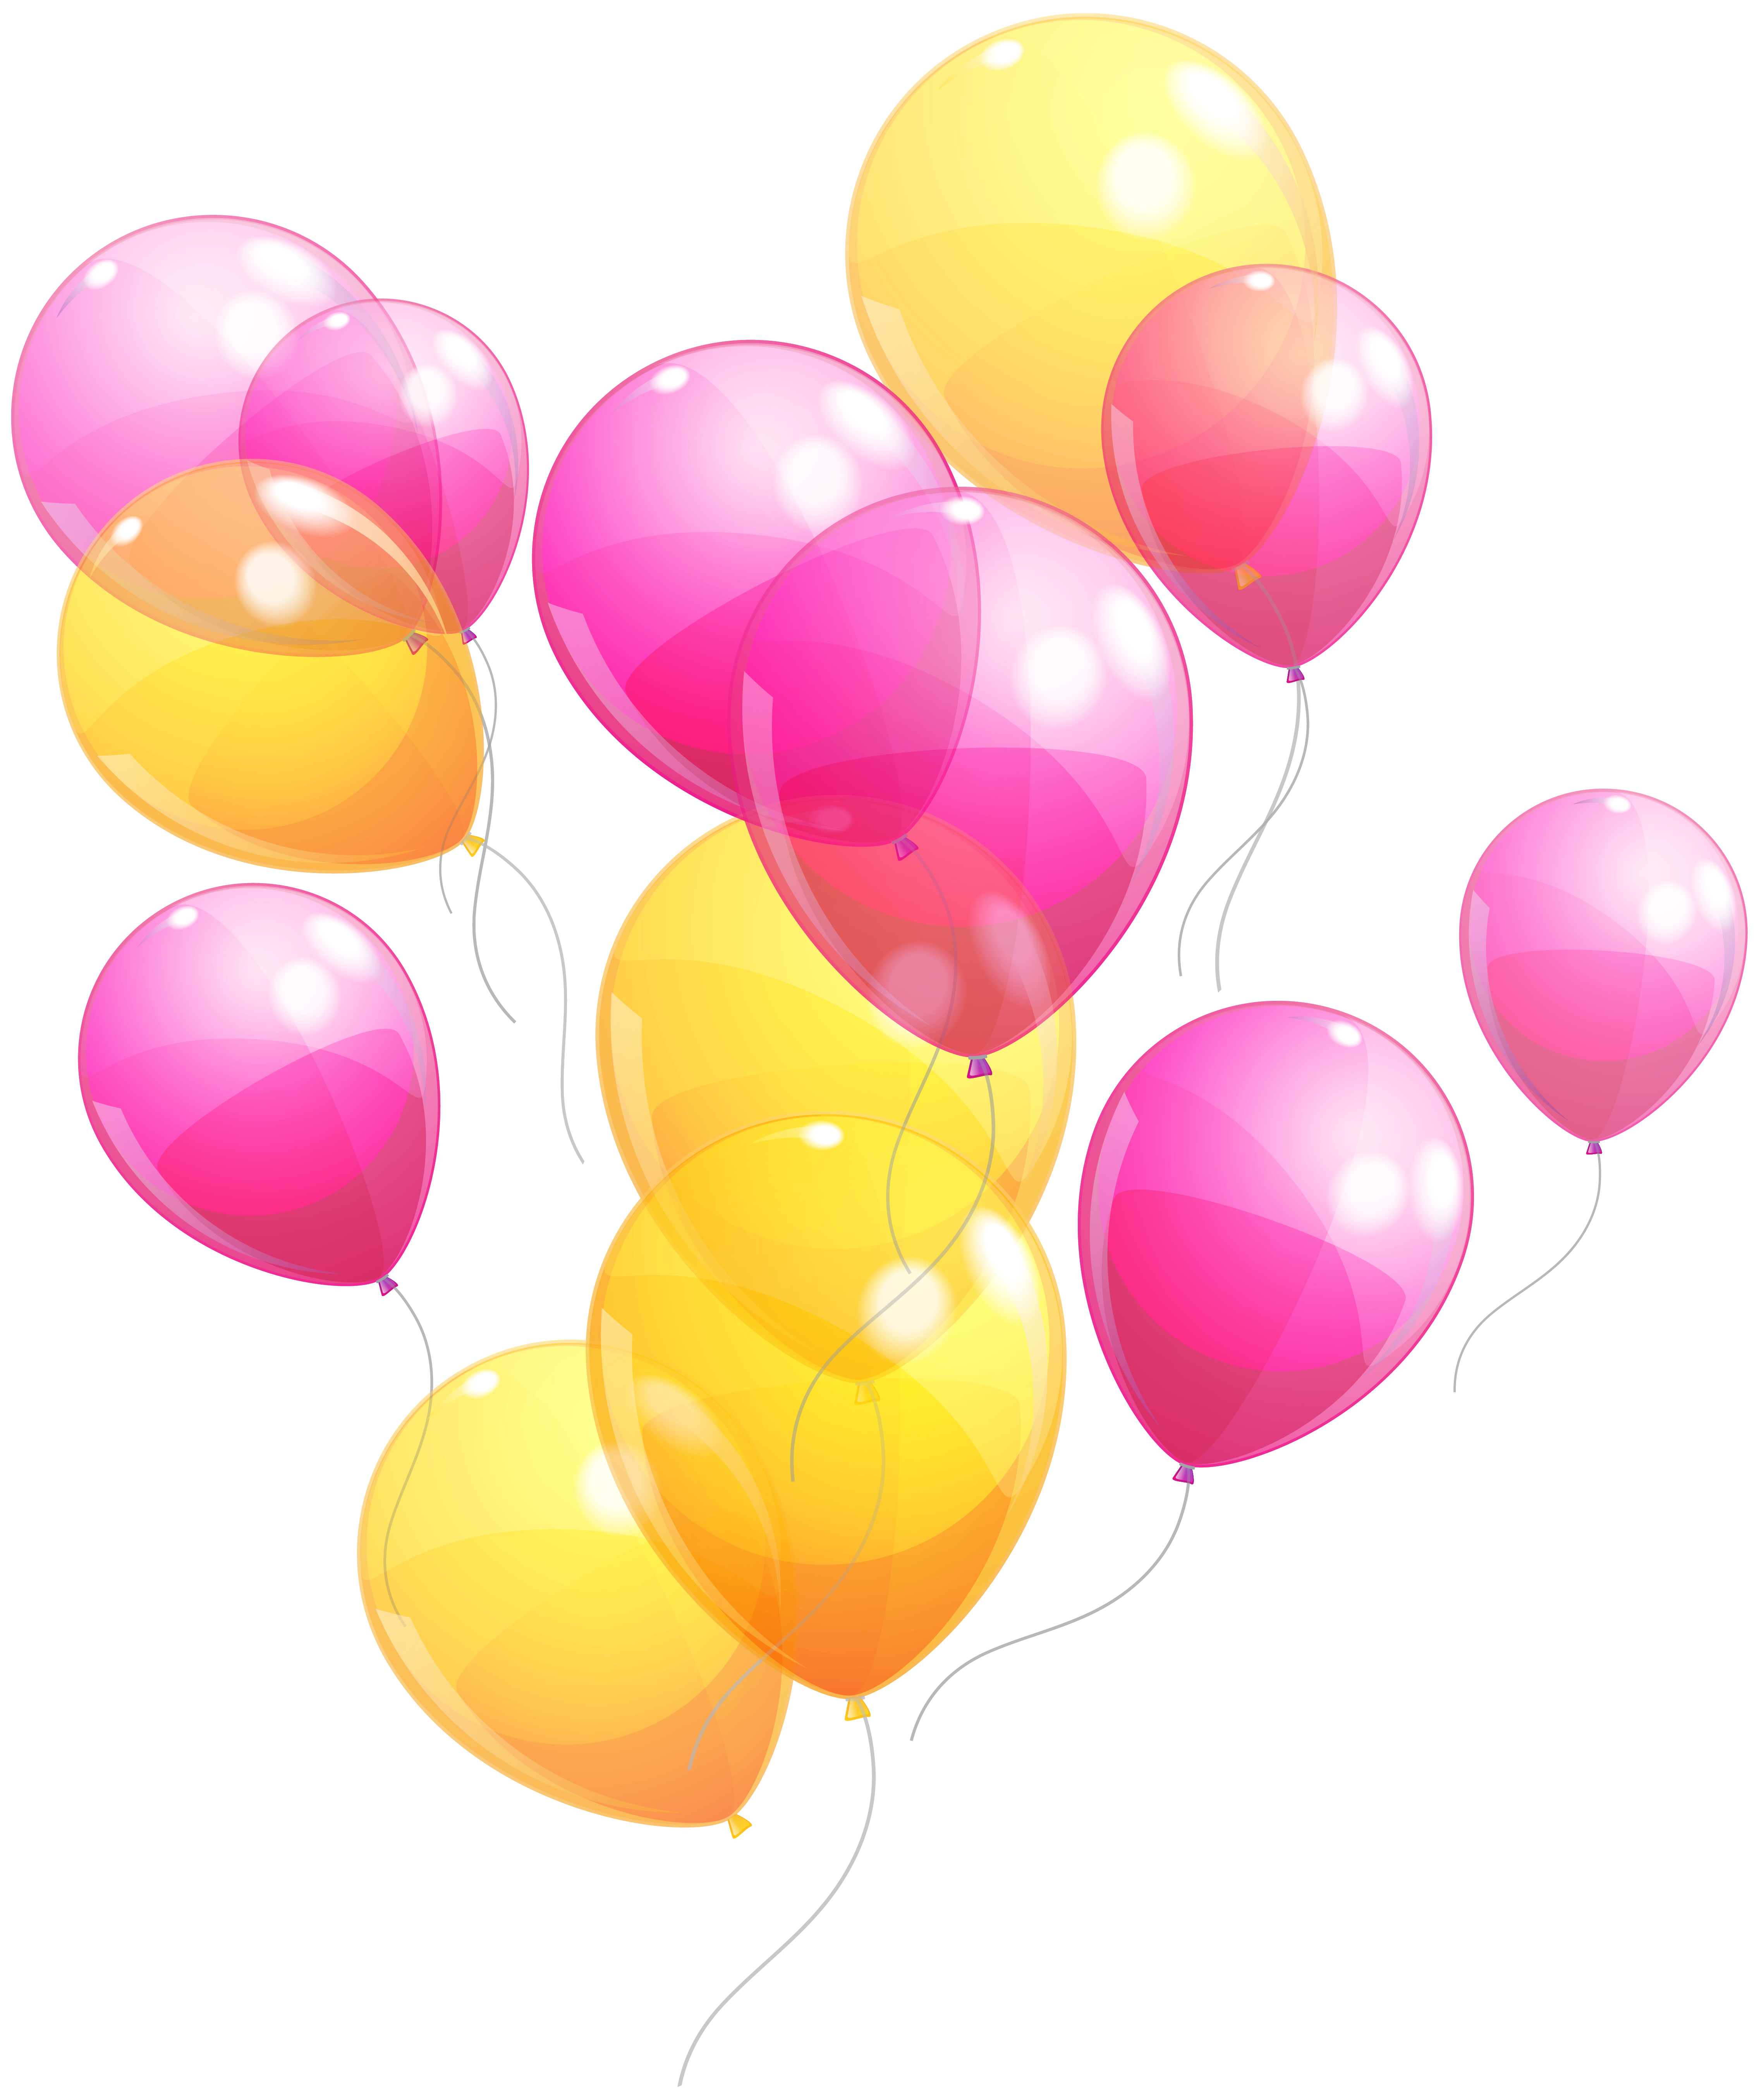 Clipart balloon gold glitter. Pink and yellow balloons